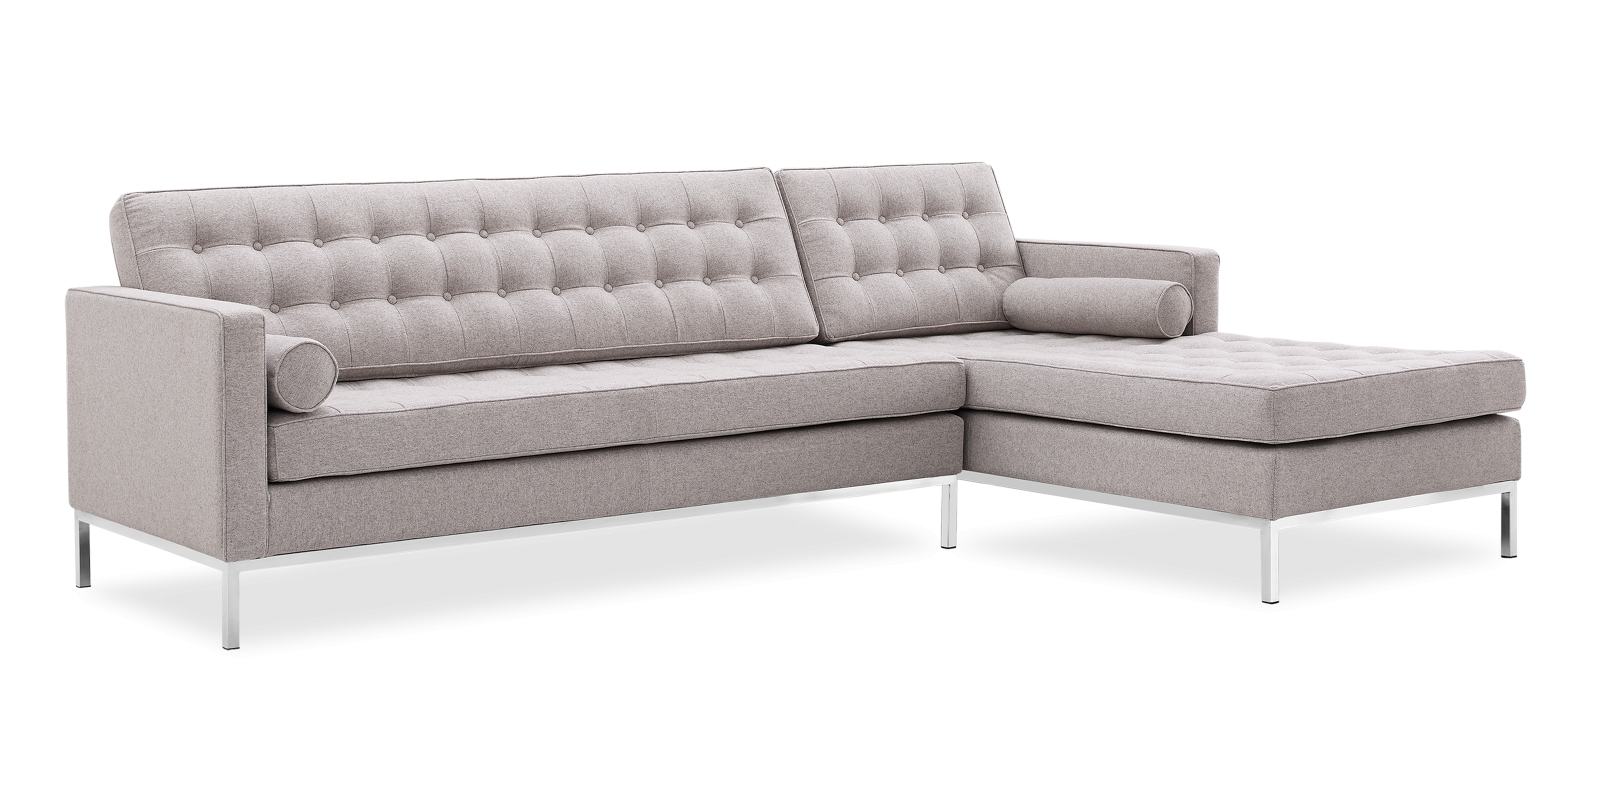 Florence Knoll Style Corner Sofa All With Regard To Florence Knoll Style Sofas (Image 7 of 15)